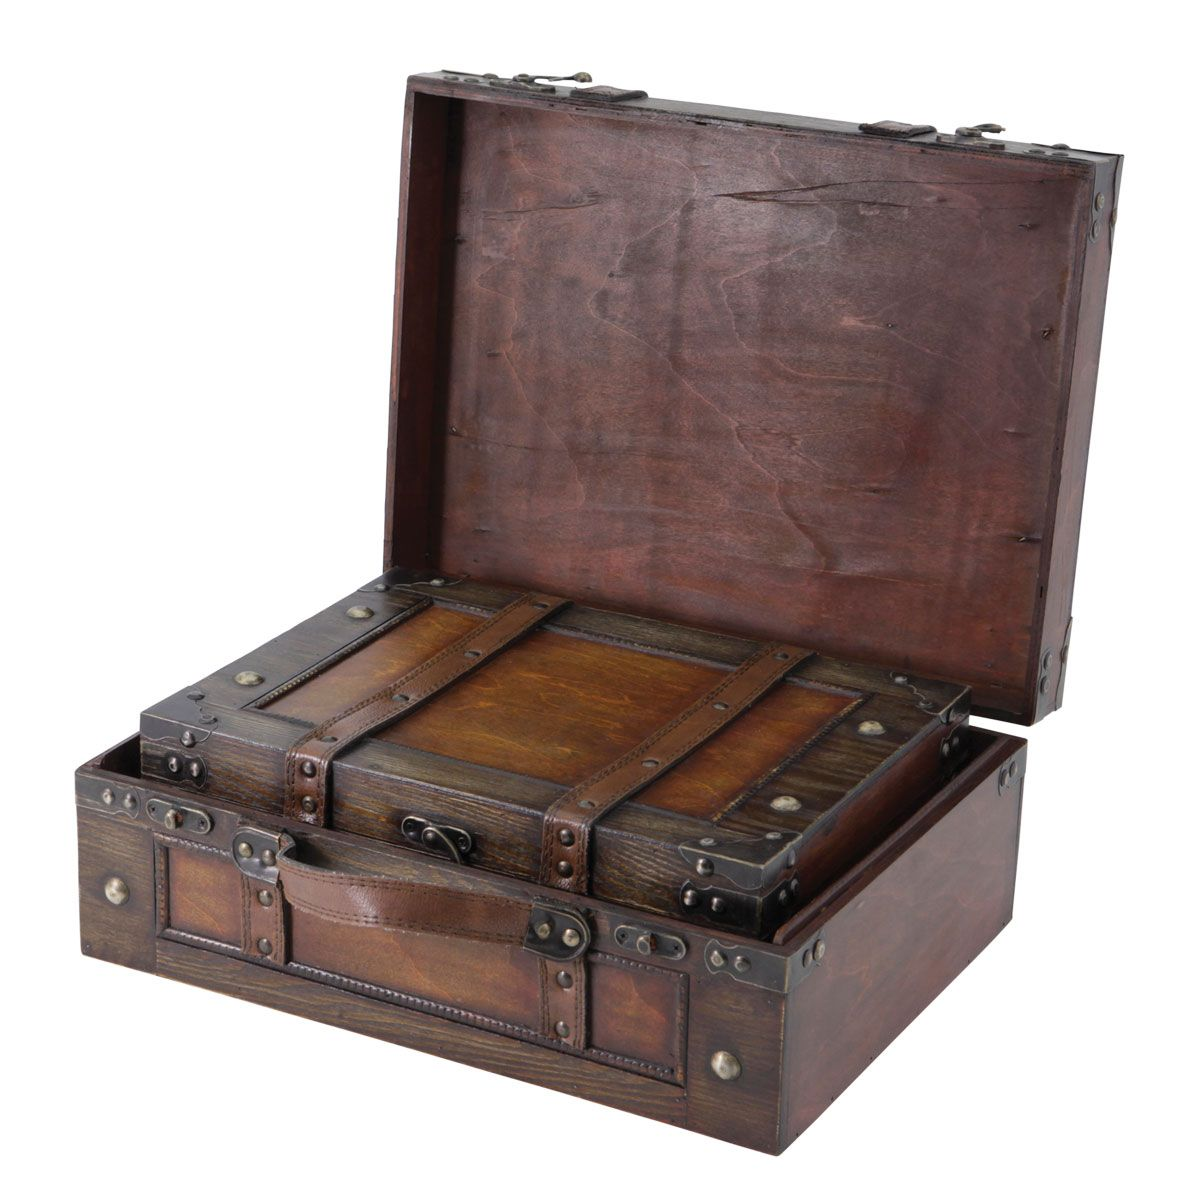 Decorative Luggage Box Antique Style Wooden Suitcase  Aged Effect Wooden Storage